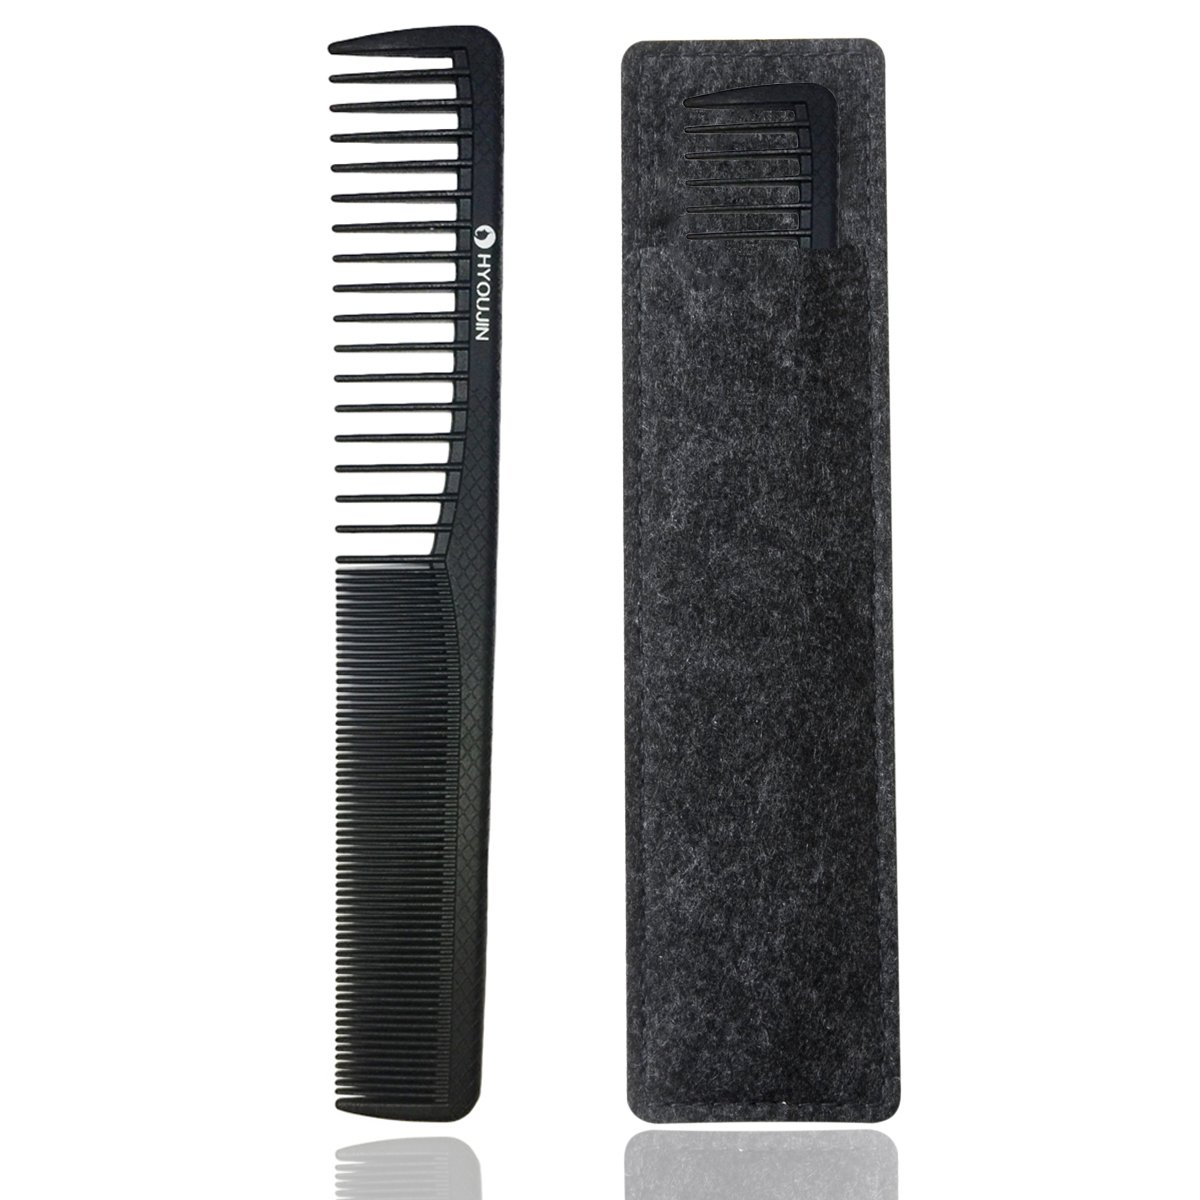 HYOUJIN 107 Matador Cutting Comb,100% Anti static 230℃(450°) Heat Resistant, best for curly hair styling or Mustache & Beard grooming